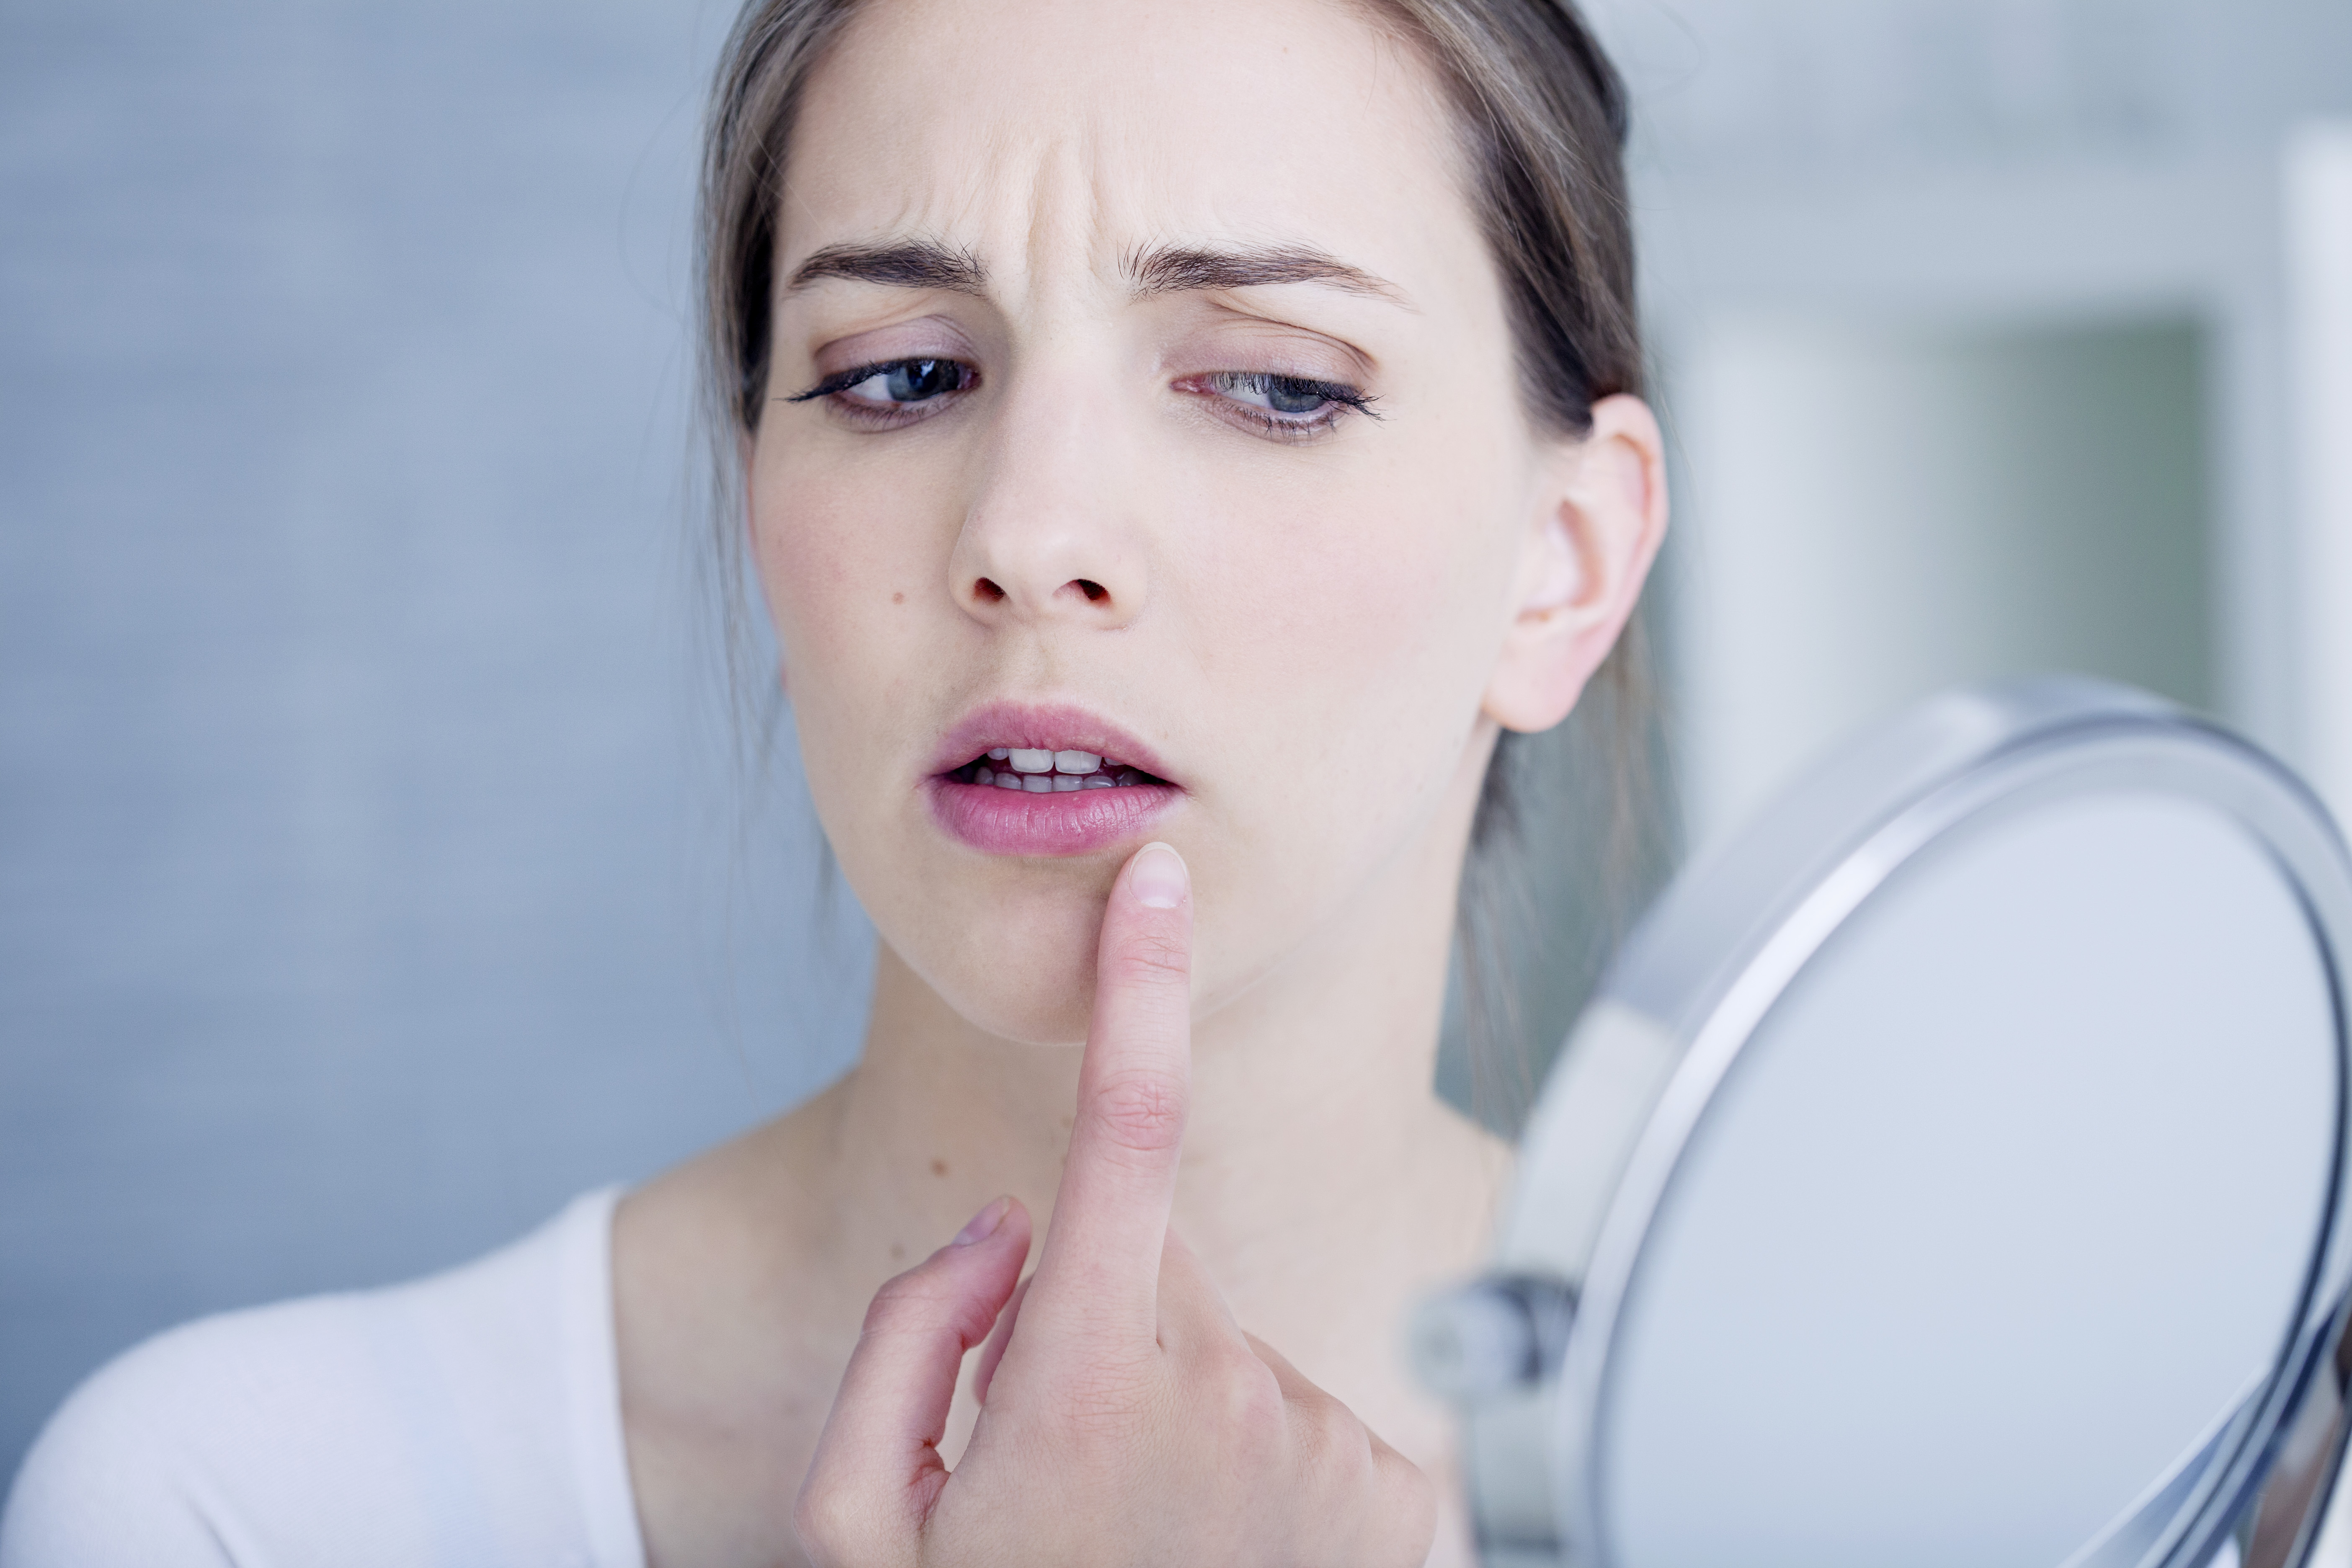 Causes of White Peeling Skin Inside Lip Include Cancer